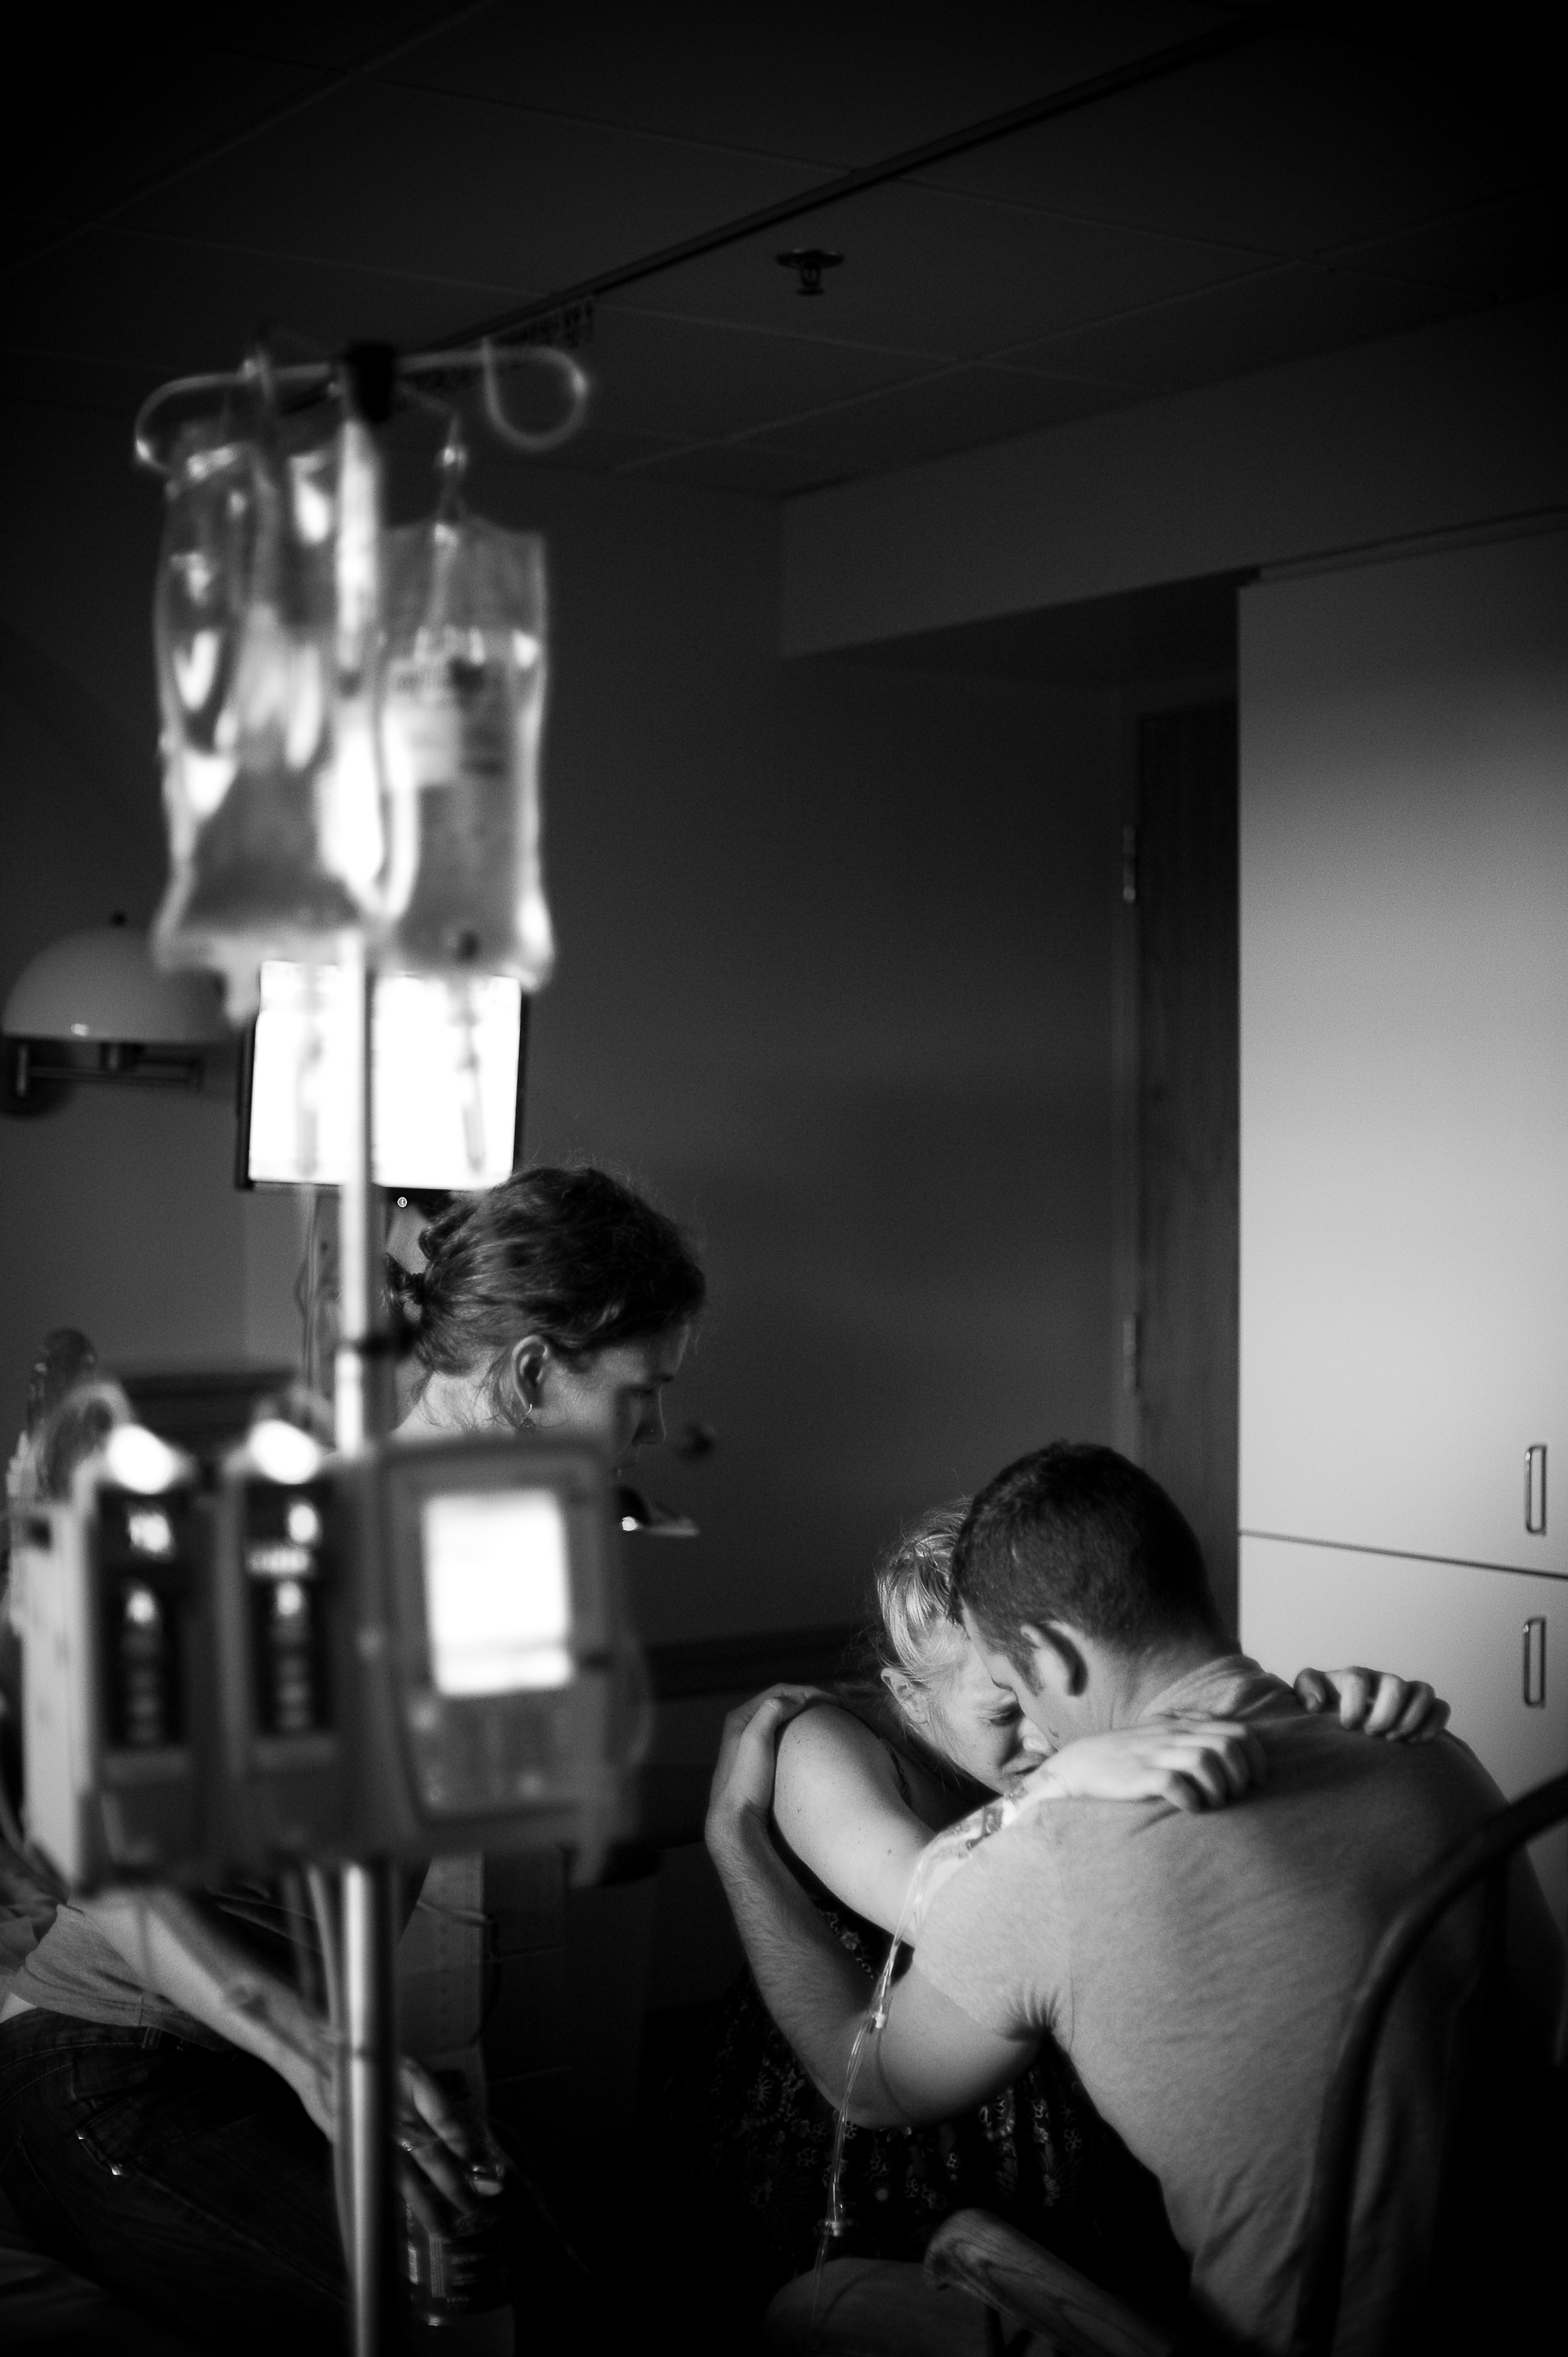 canon project imagination winner Lexia Frank photographs a birth on film